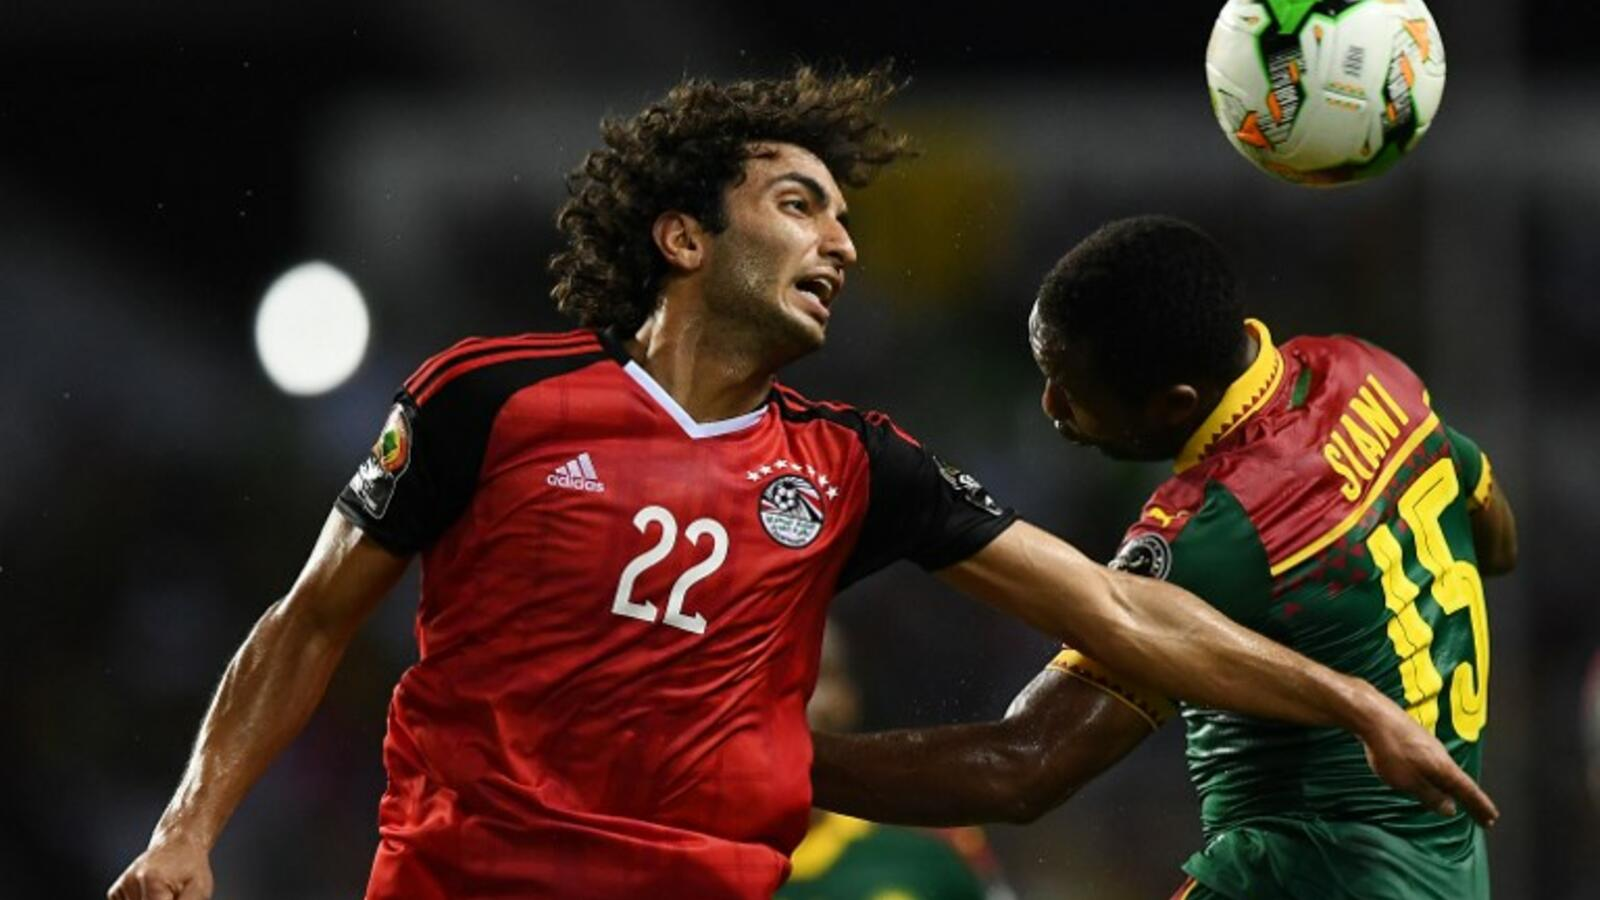 Mohamed Salah scores to help Egypt reach last 16 of AFCON